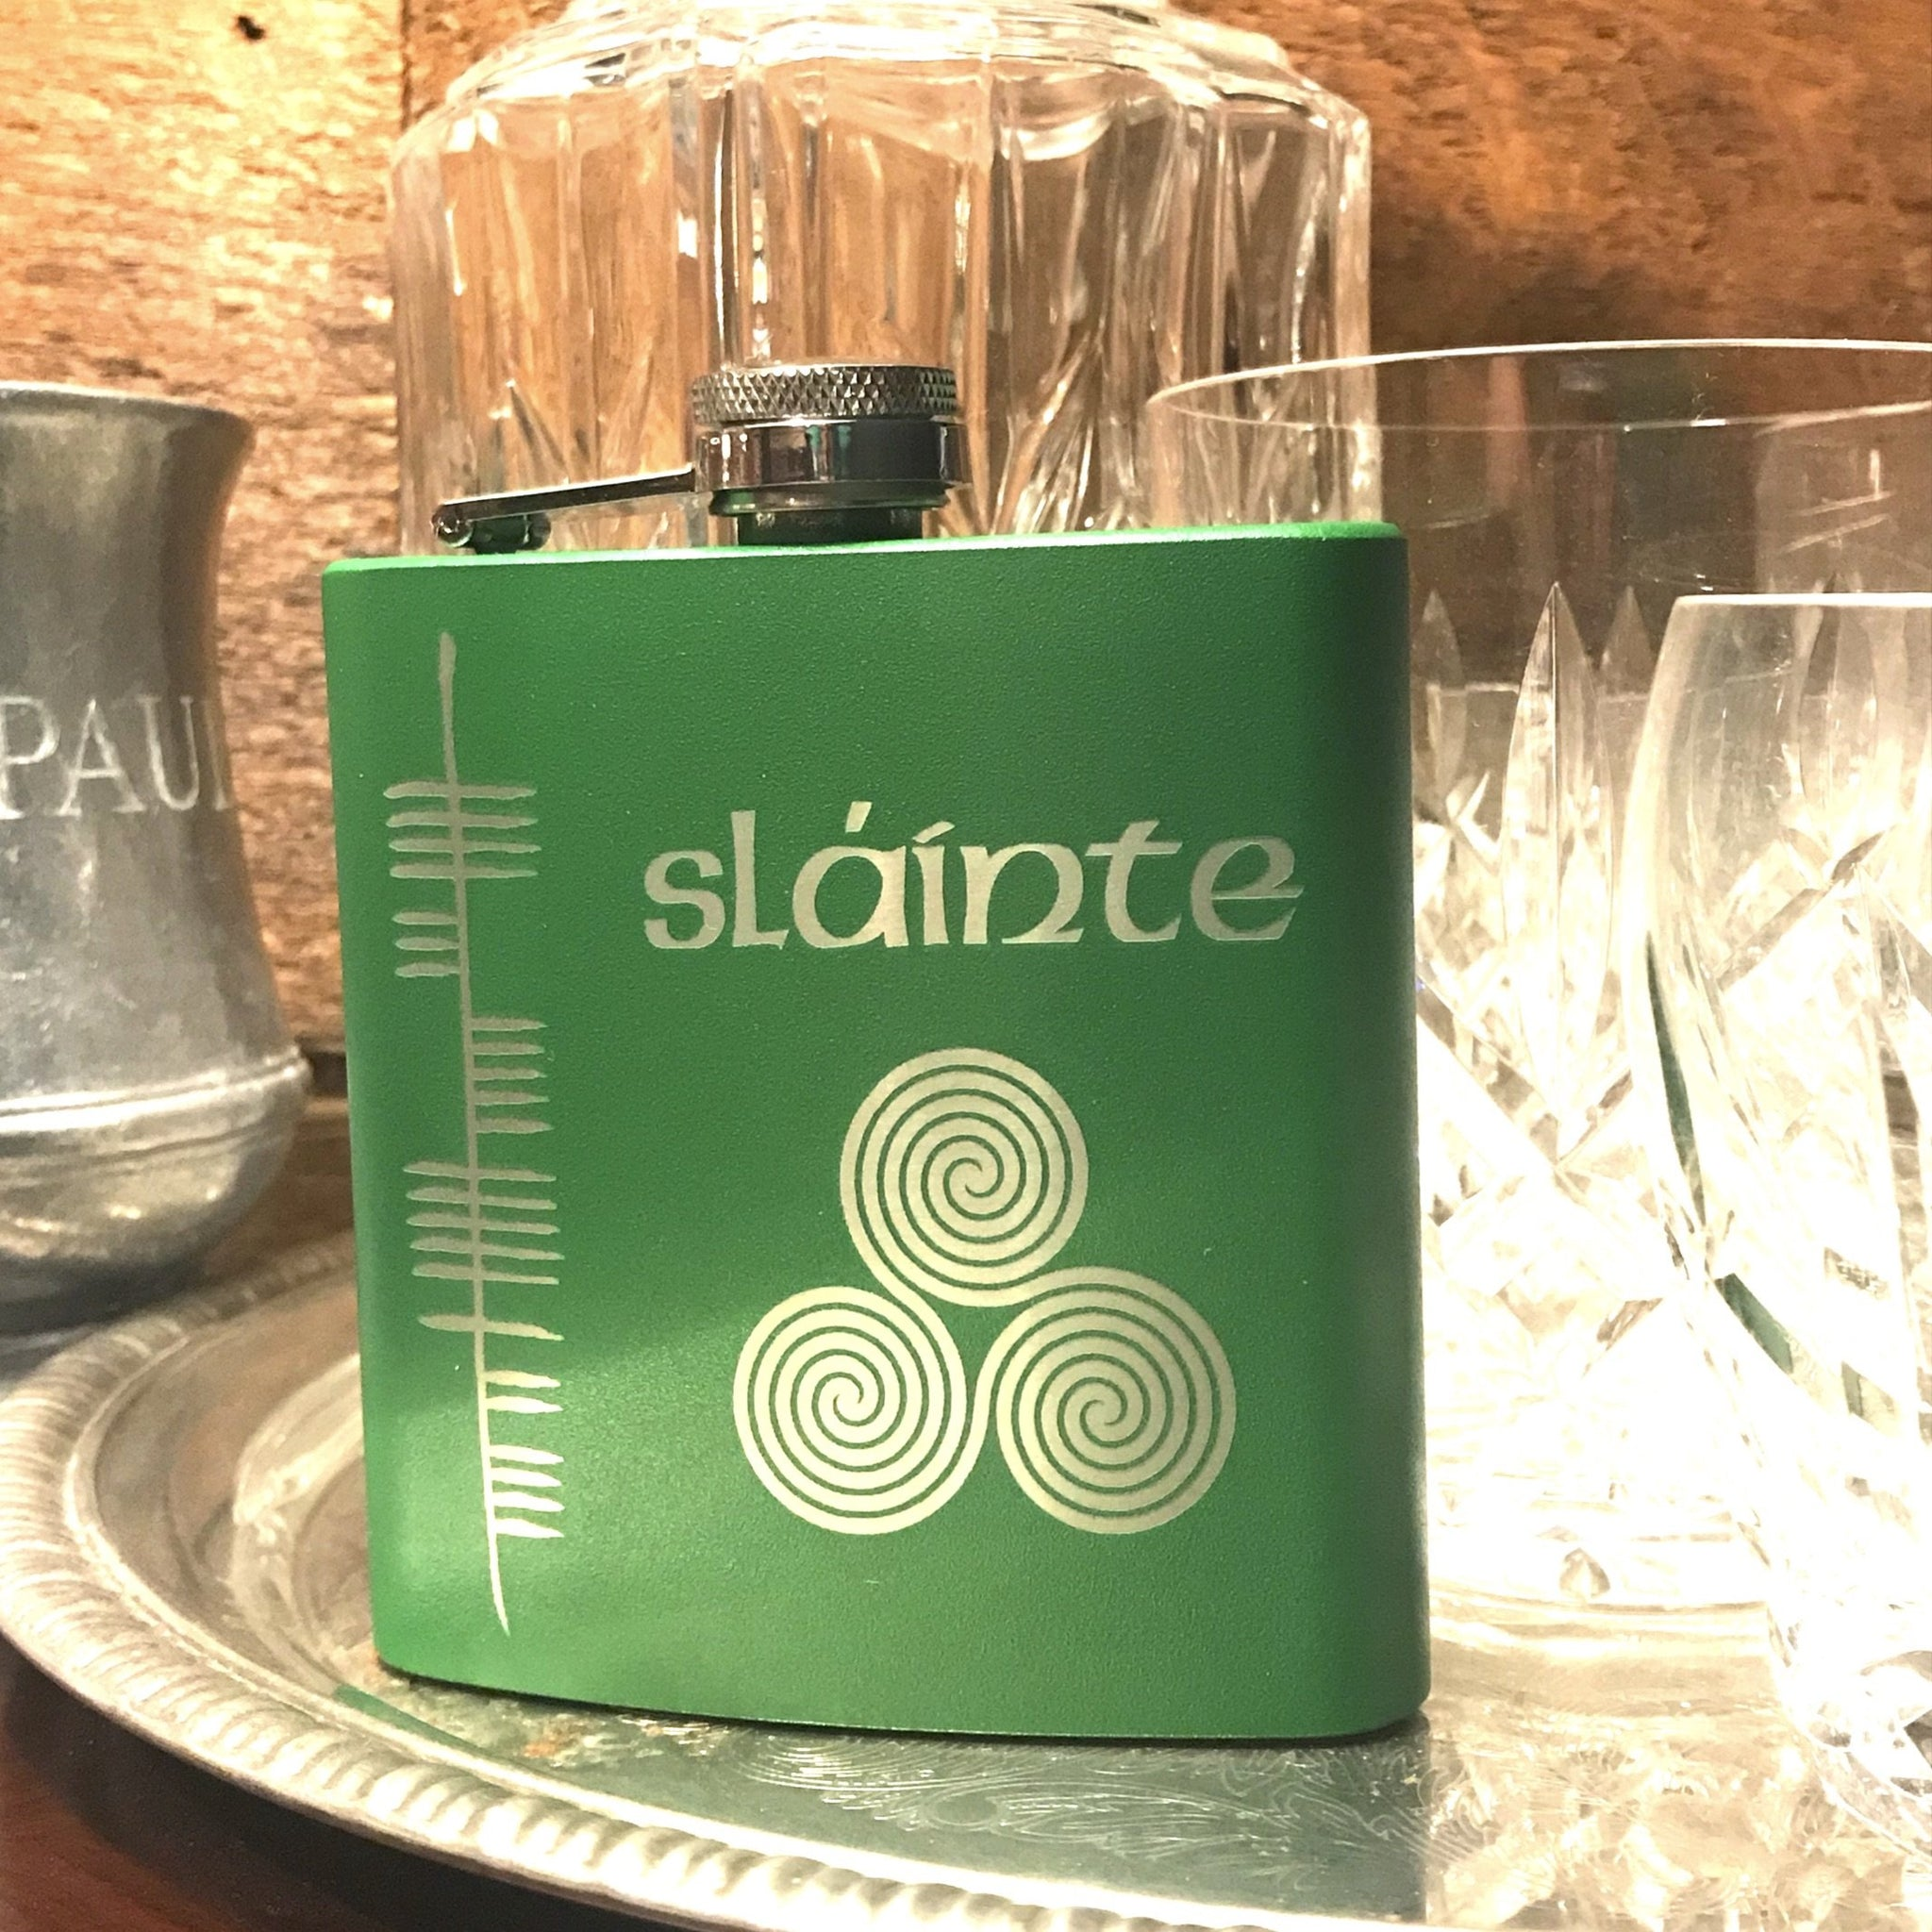 Health Sláinte Stainless Steel Engraved Irish Whiskey Flask